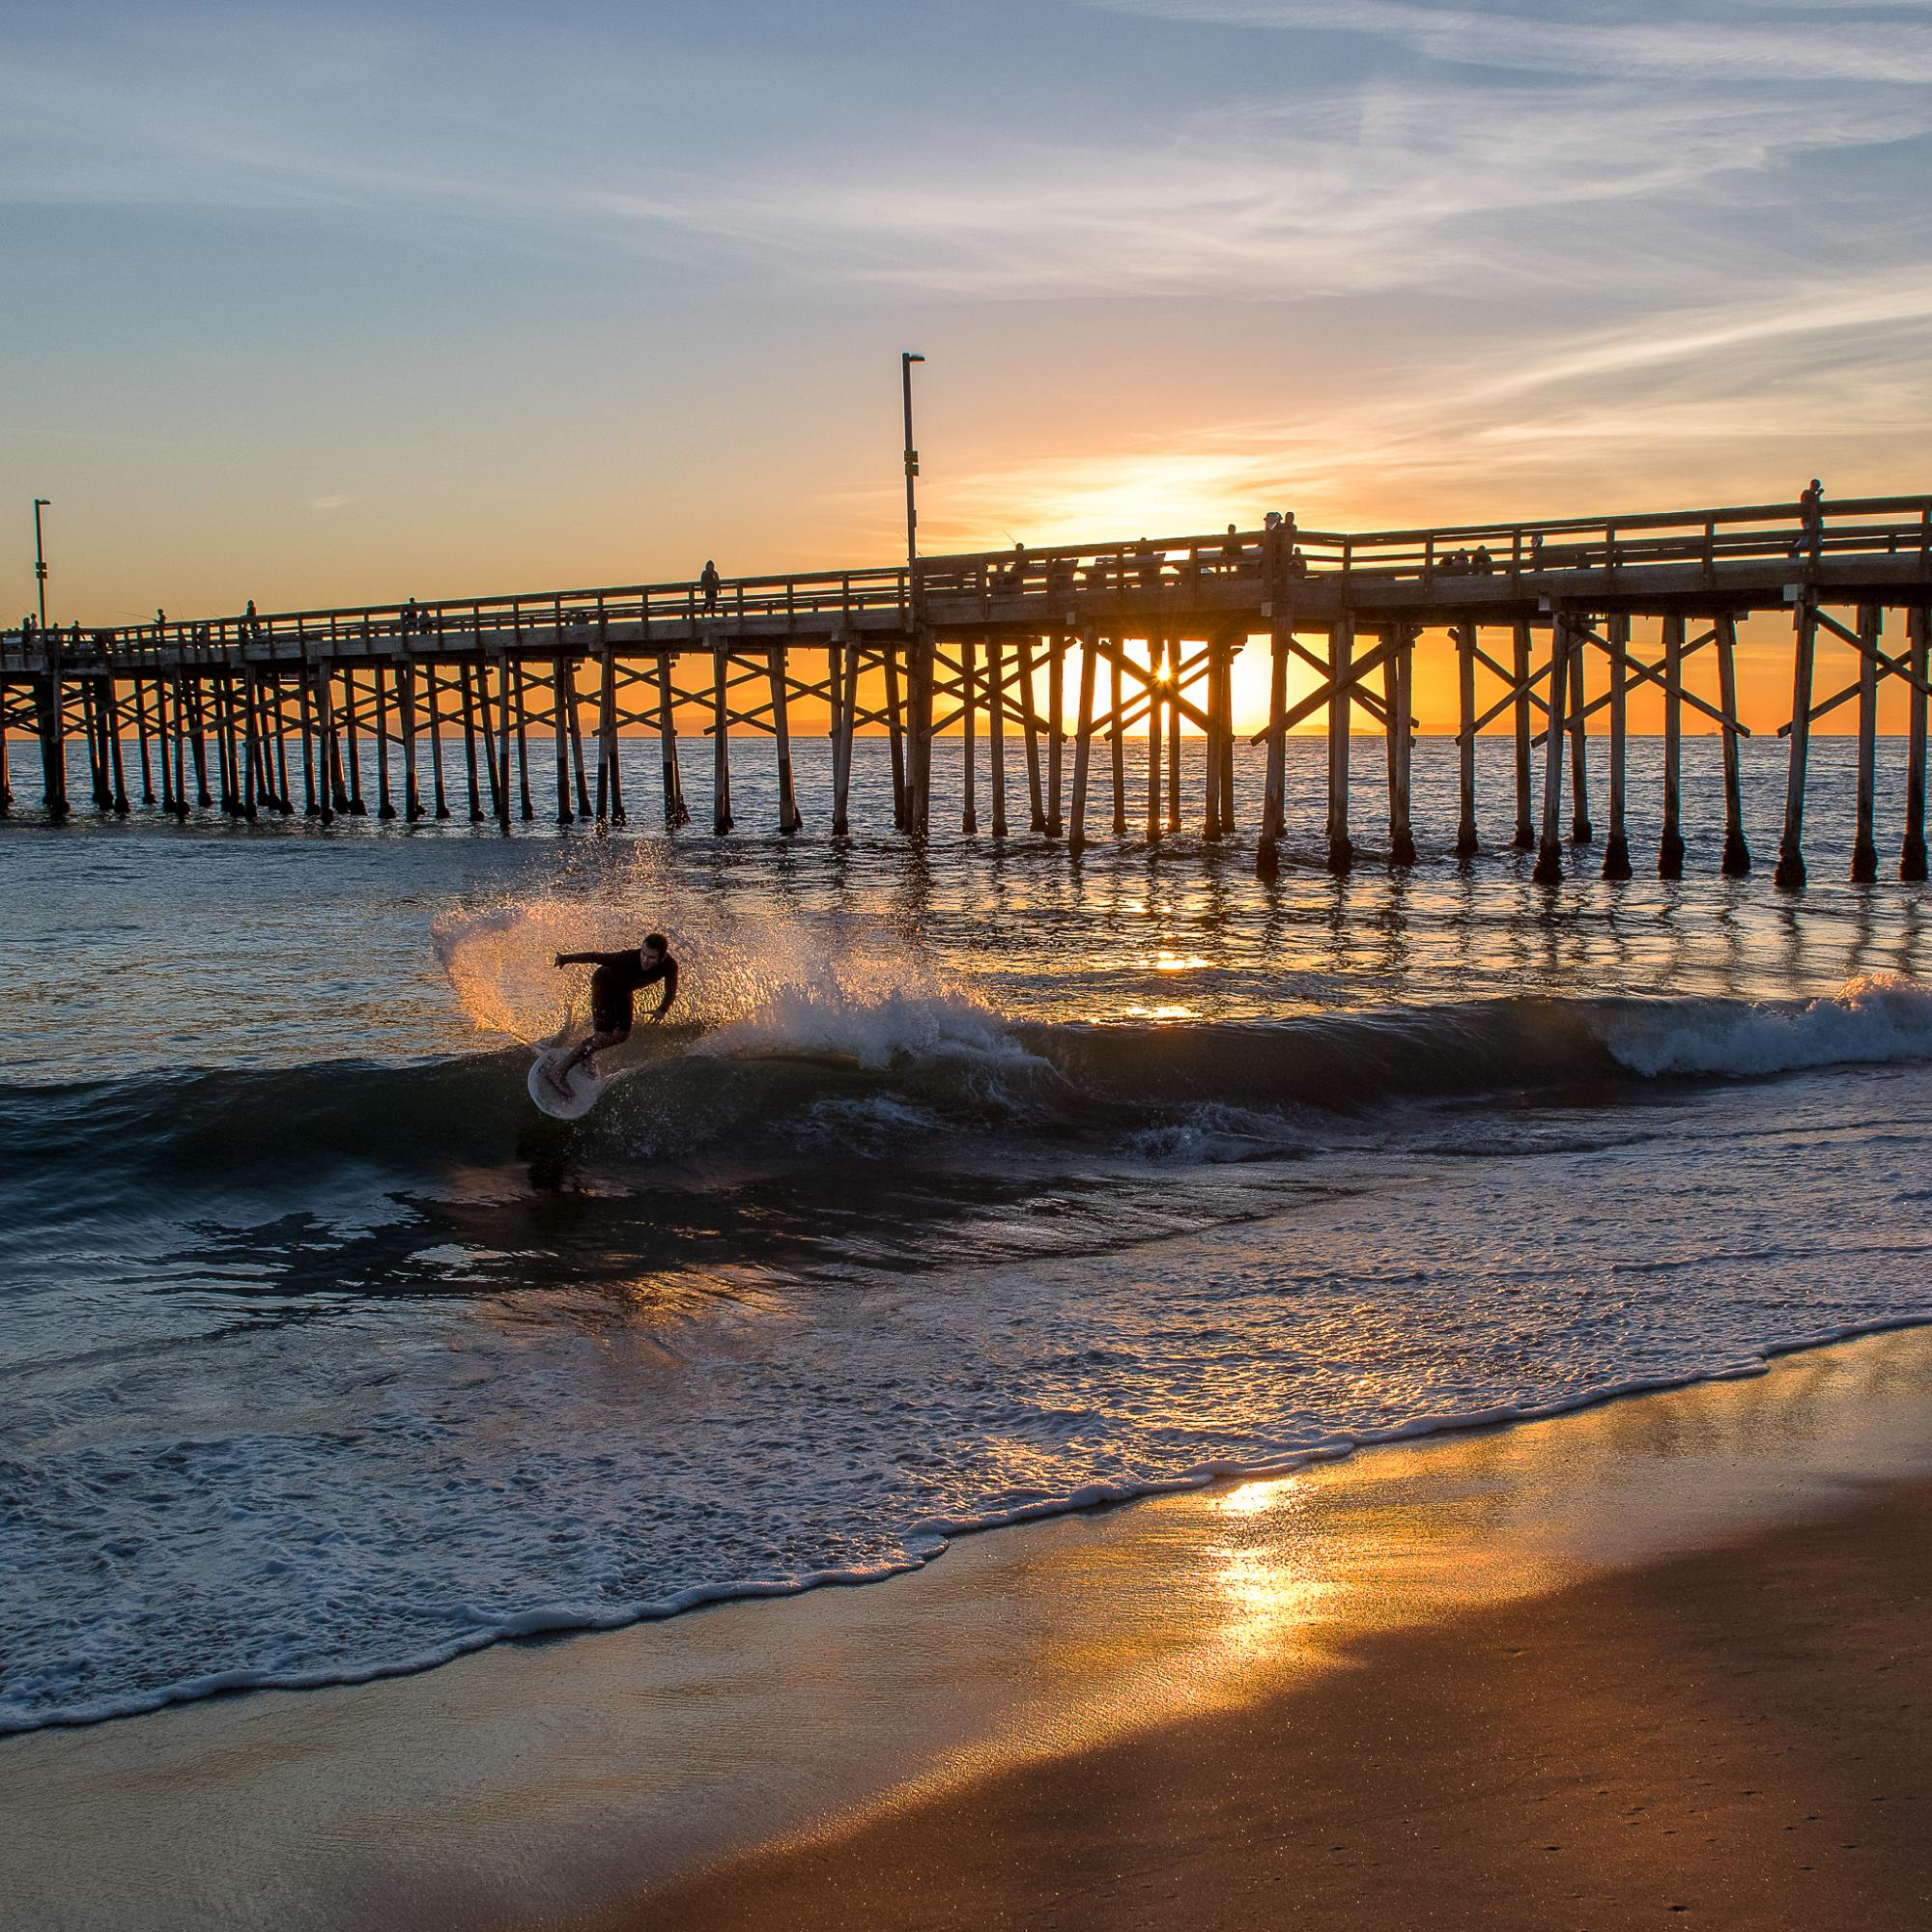 Balboa Pier sunset with skim boarder